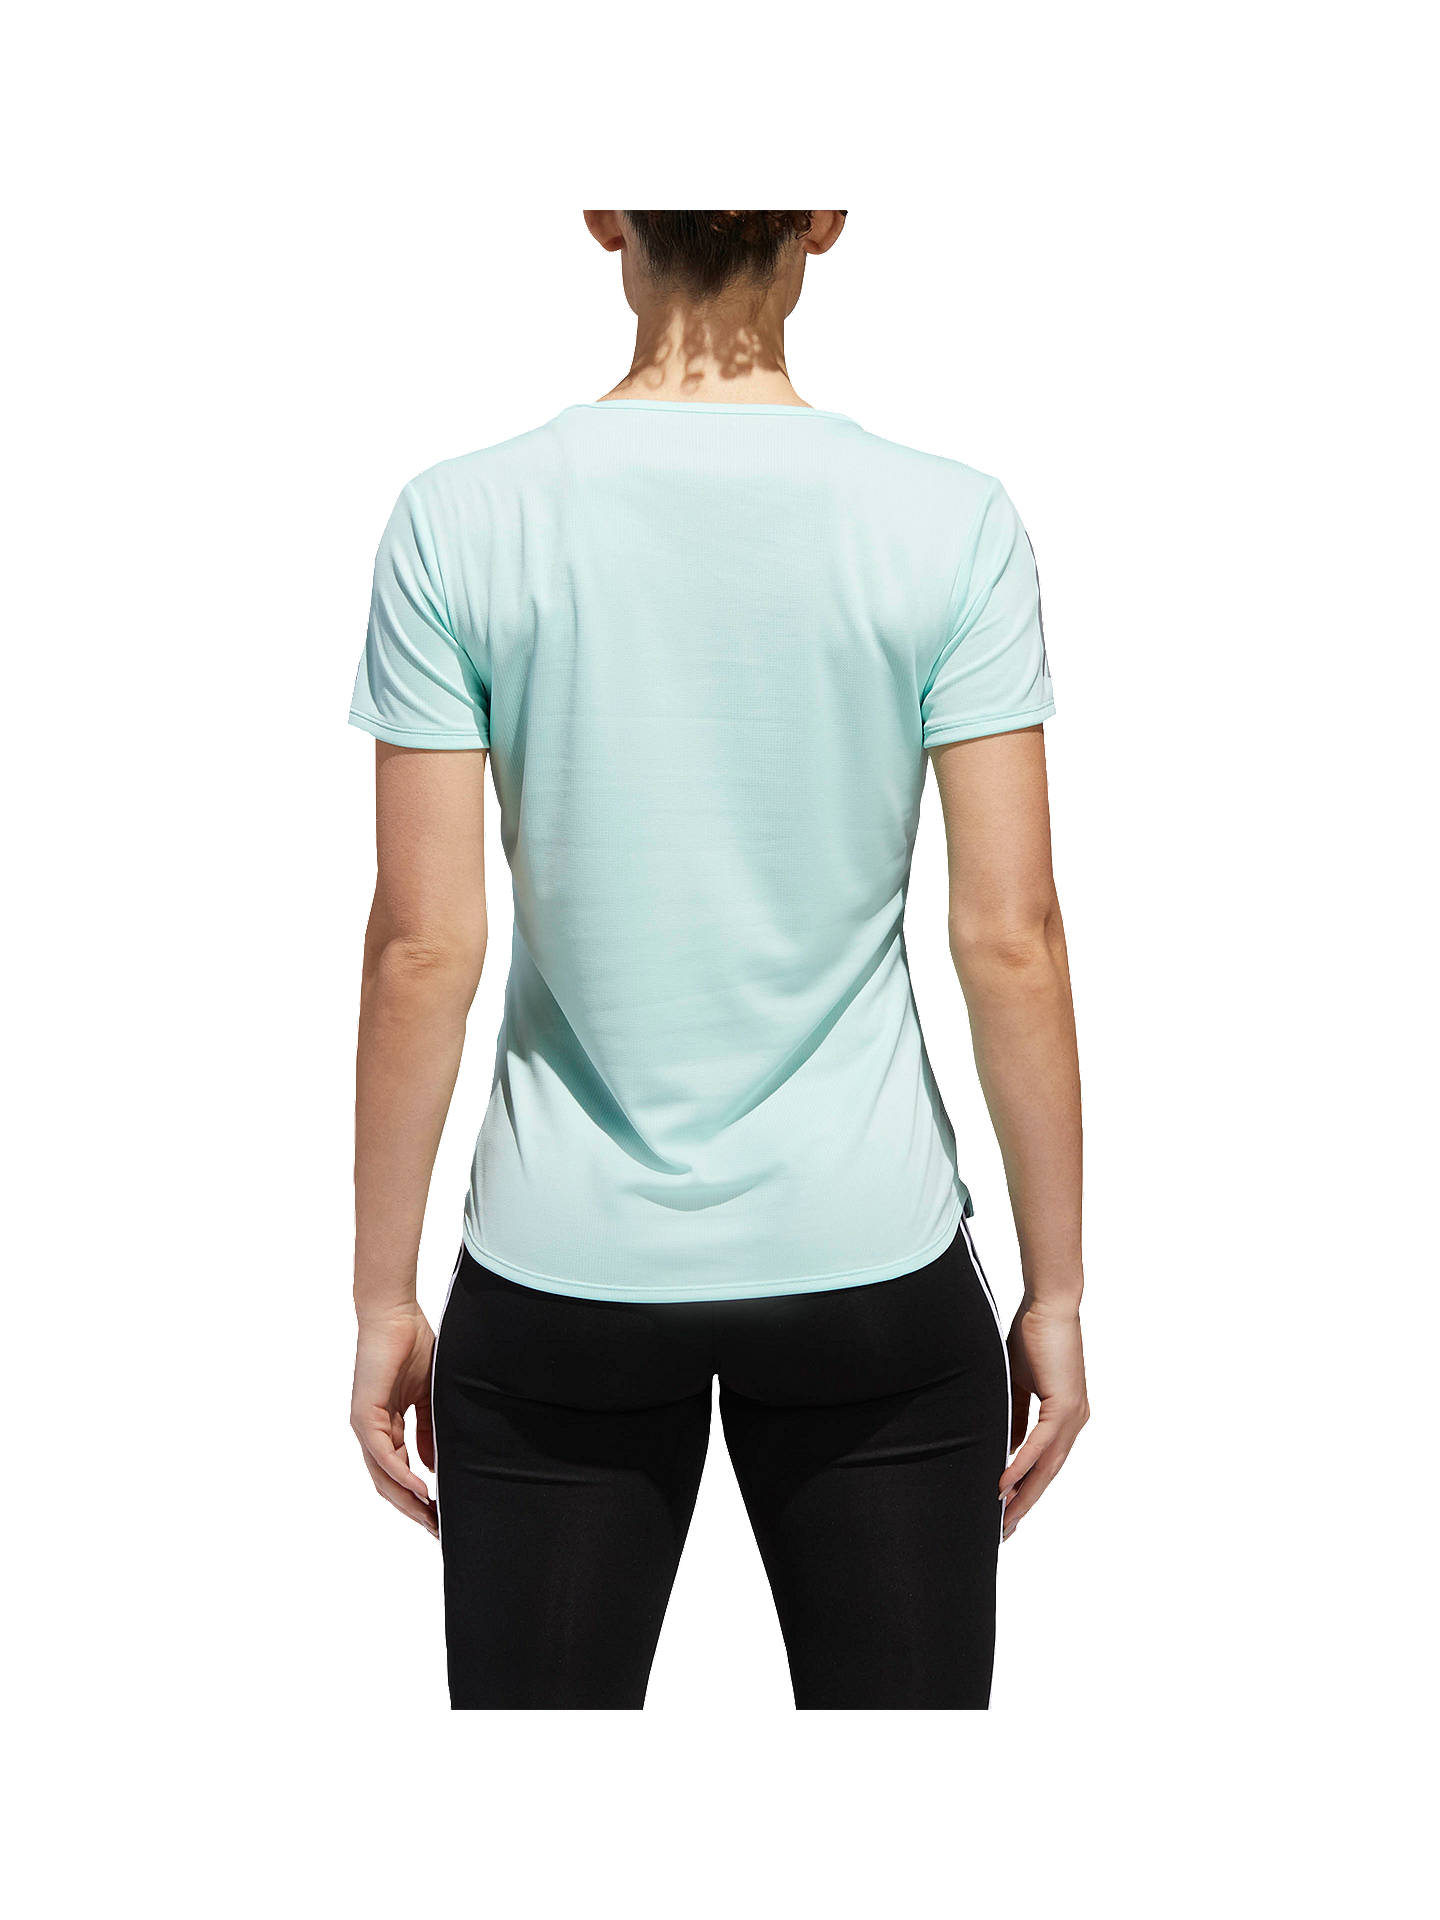 Buyadidas Response Short Sleeve Running T-Shirt, Clear Mint, XS Online at johnlewis.com